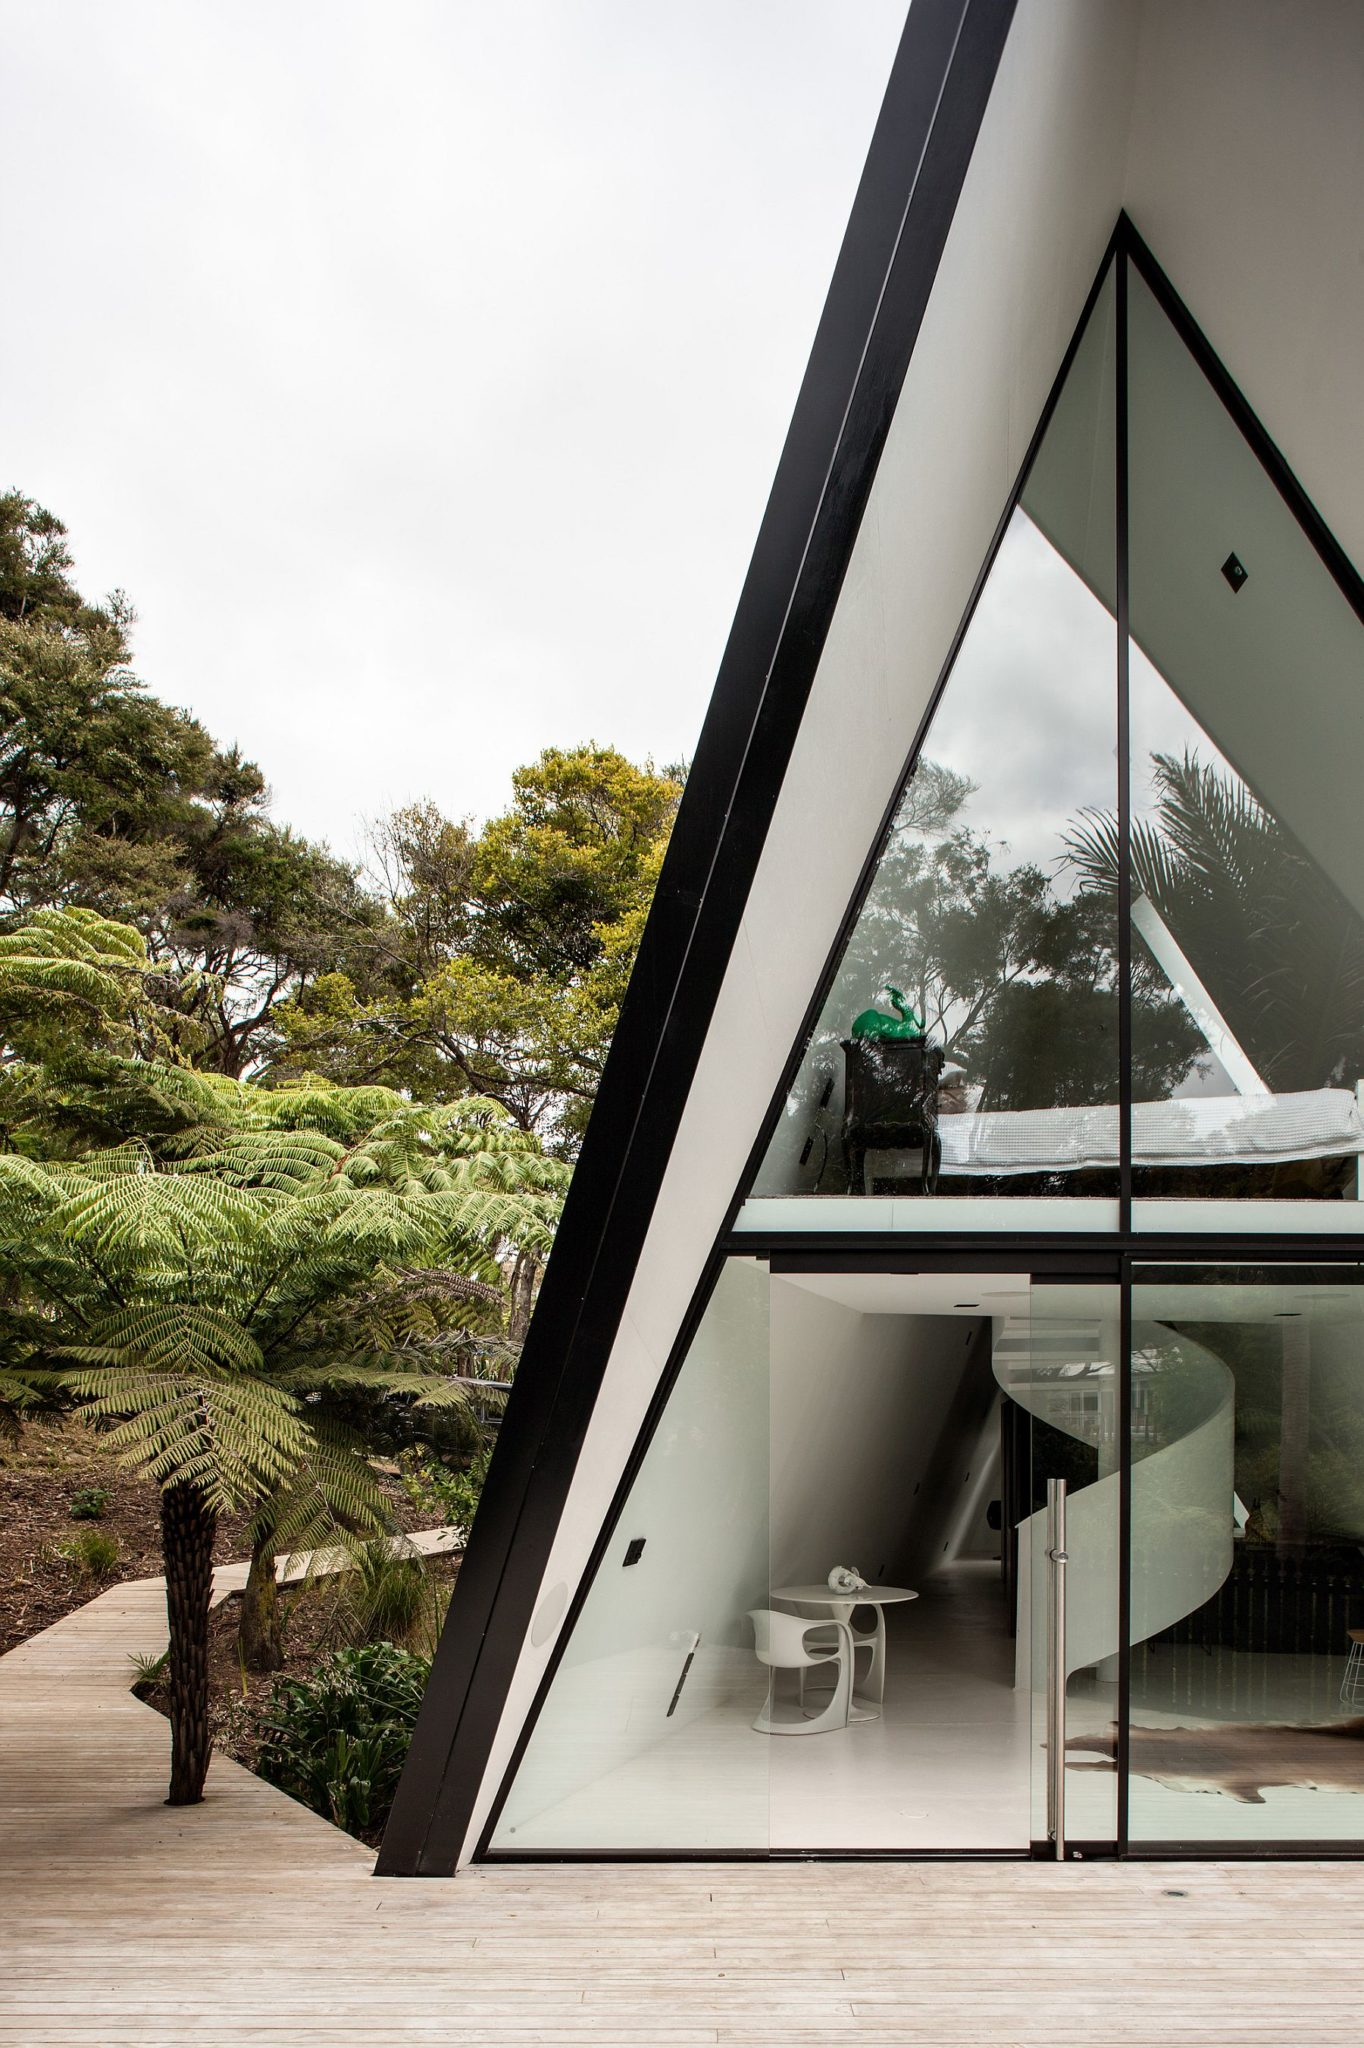 Innovative Tent House designed by Chris Tate Architecture